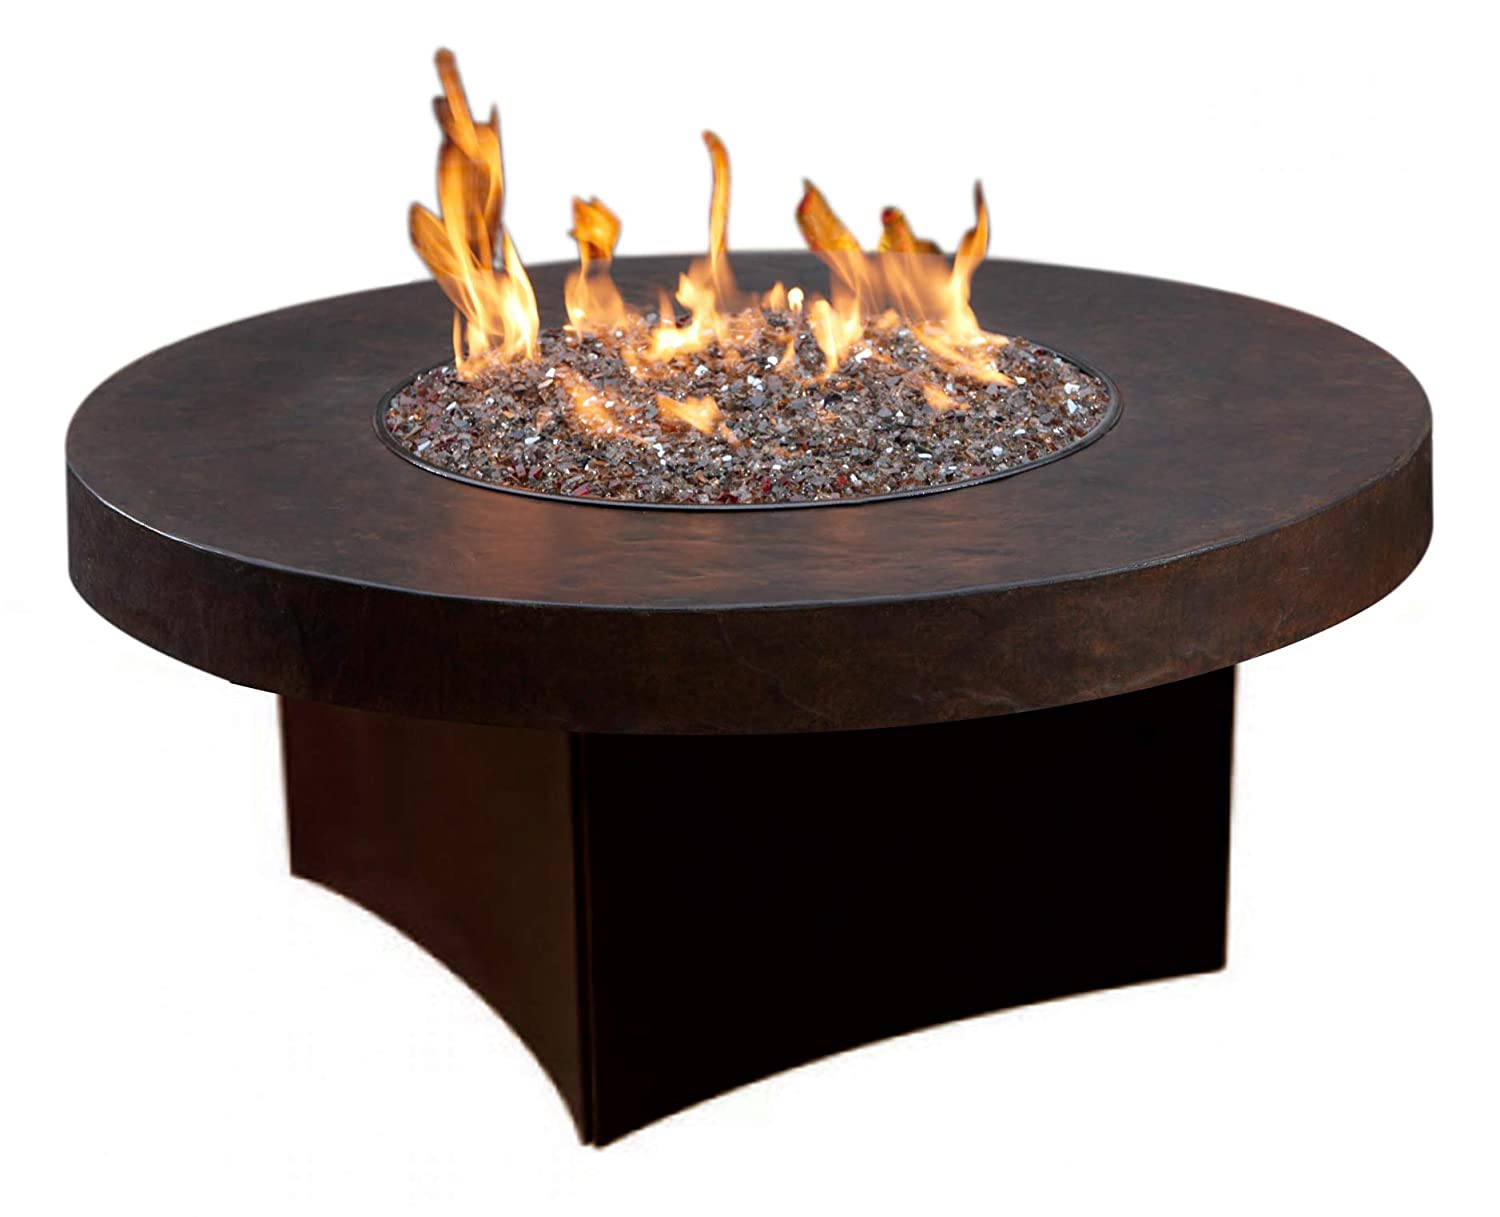 Oriflamme Outdoor Savanna Brown Stone Outdoor Gas Fire Pit Table W Fire Glass 42 Brown Round Natural Gas Amazon In Garden Outdoors